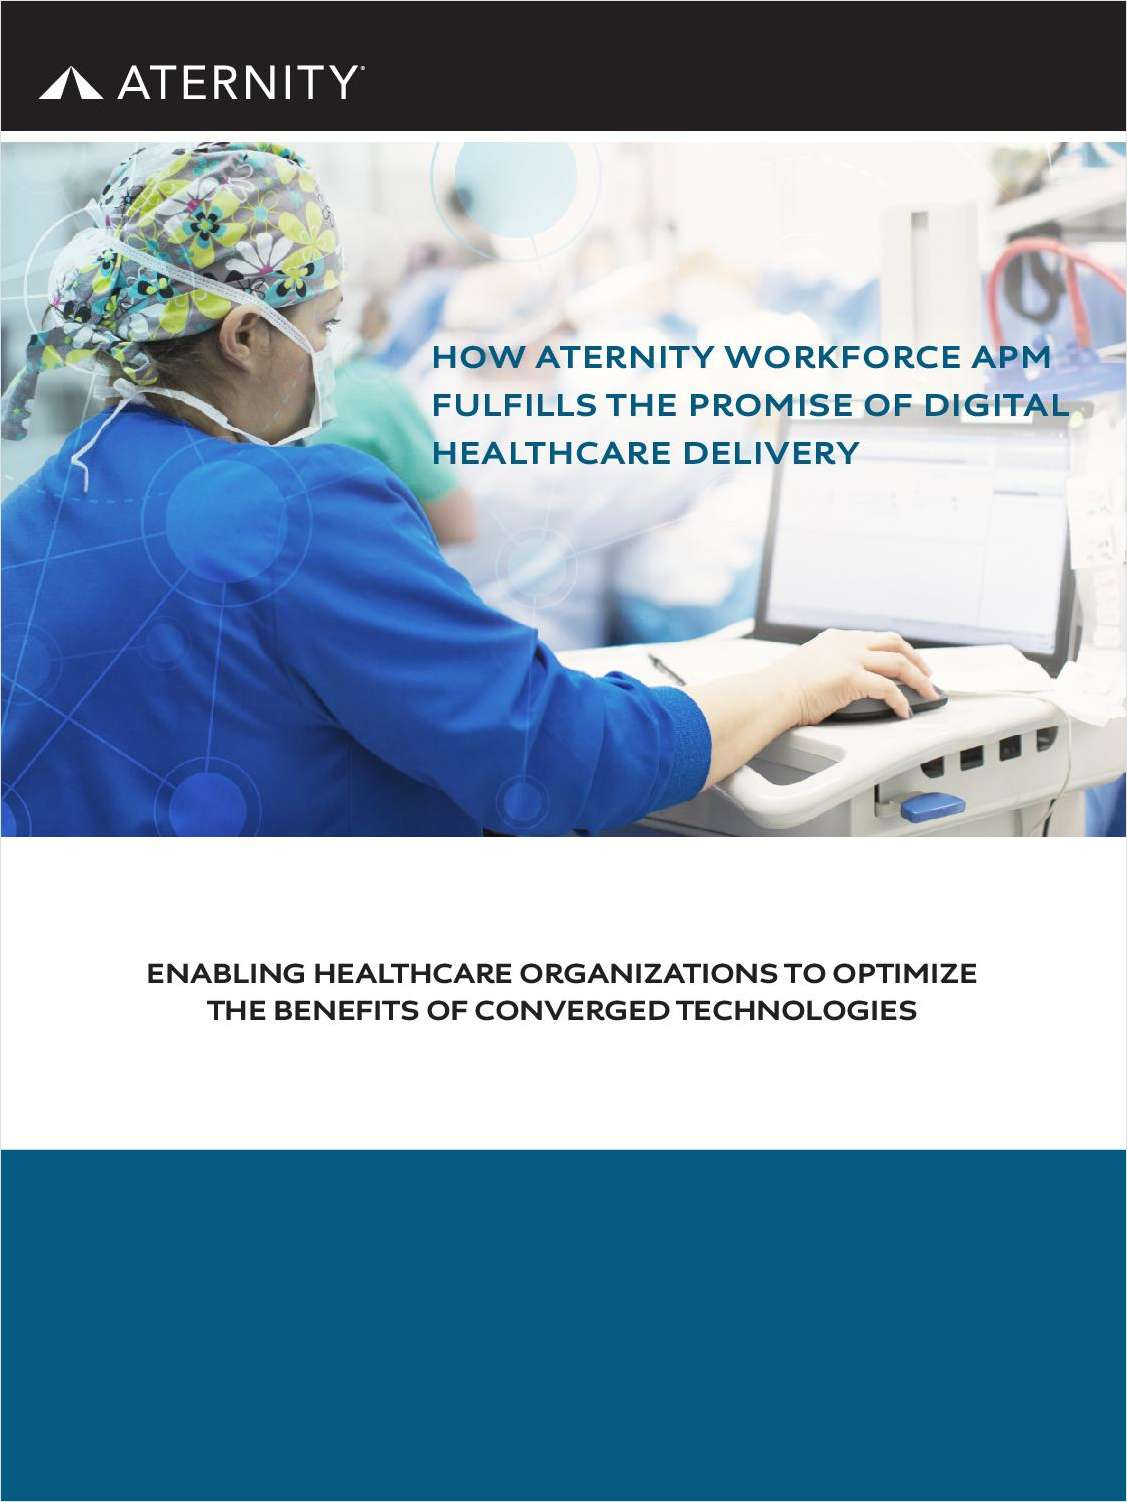 Aternity Workforce APM Fulfills the Promise of Digital Healthcare Delivery